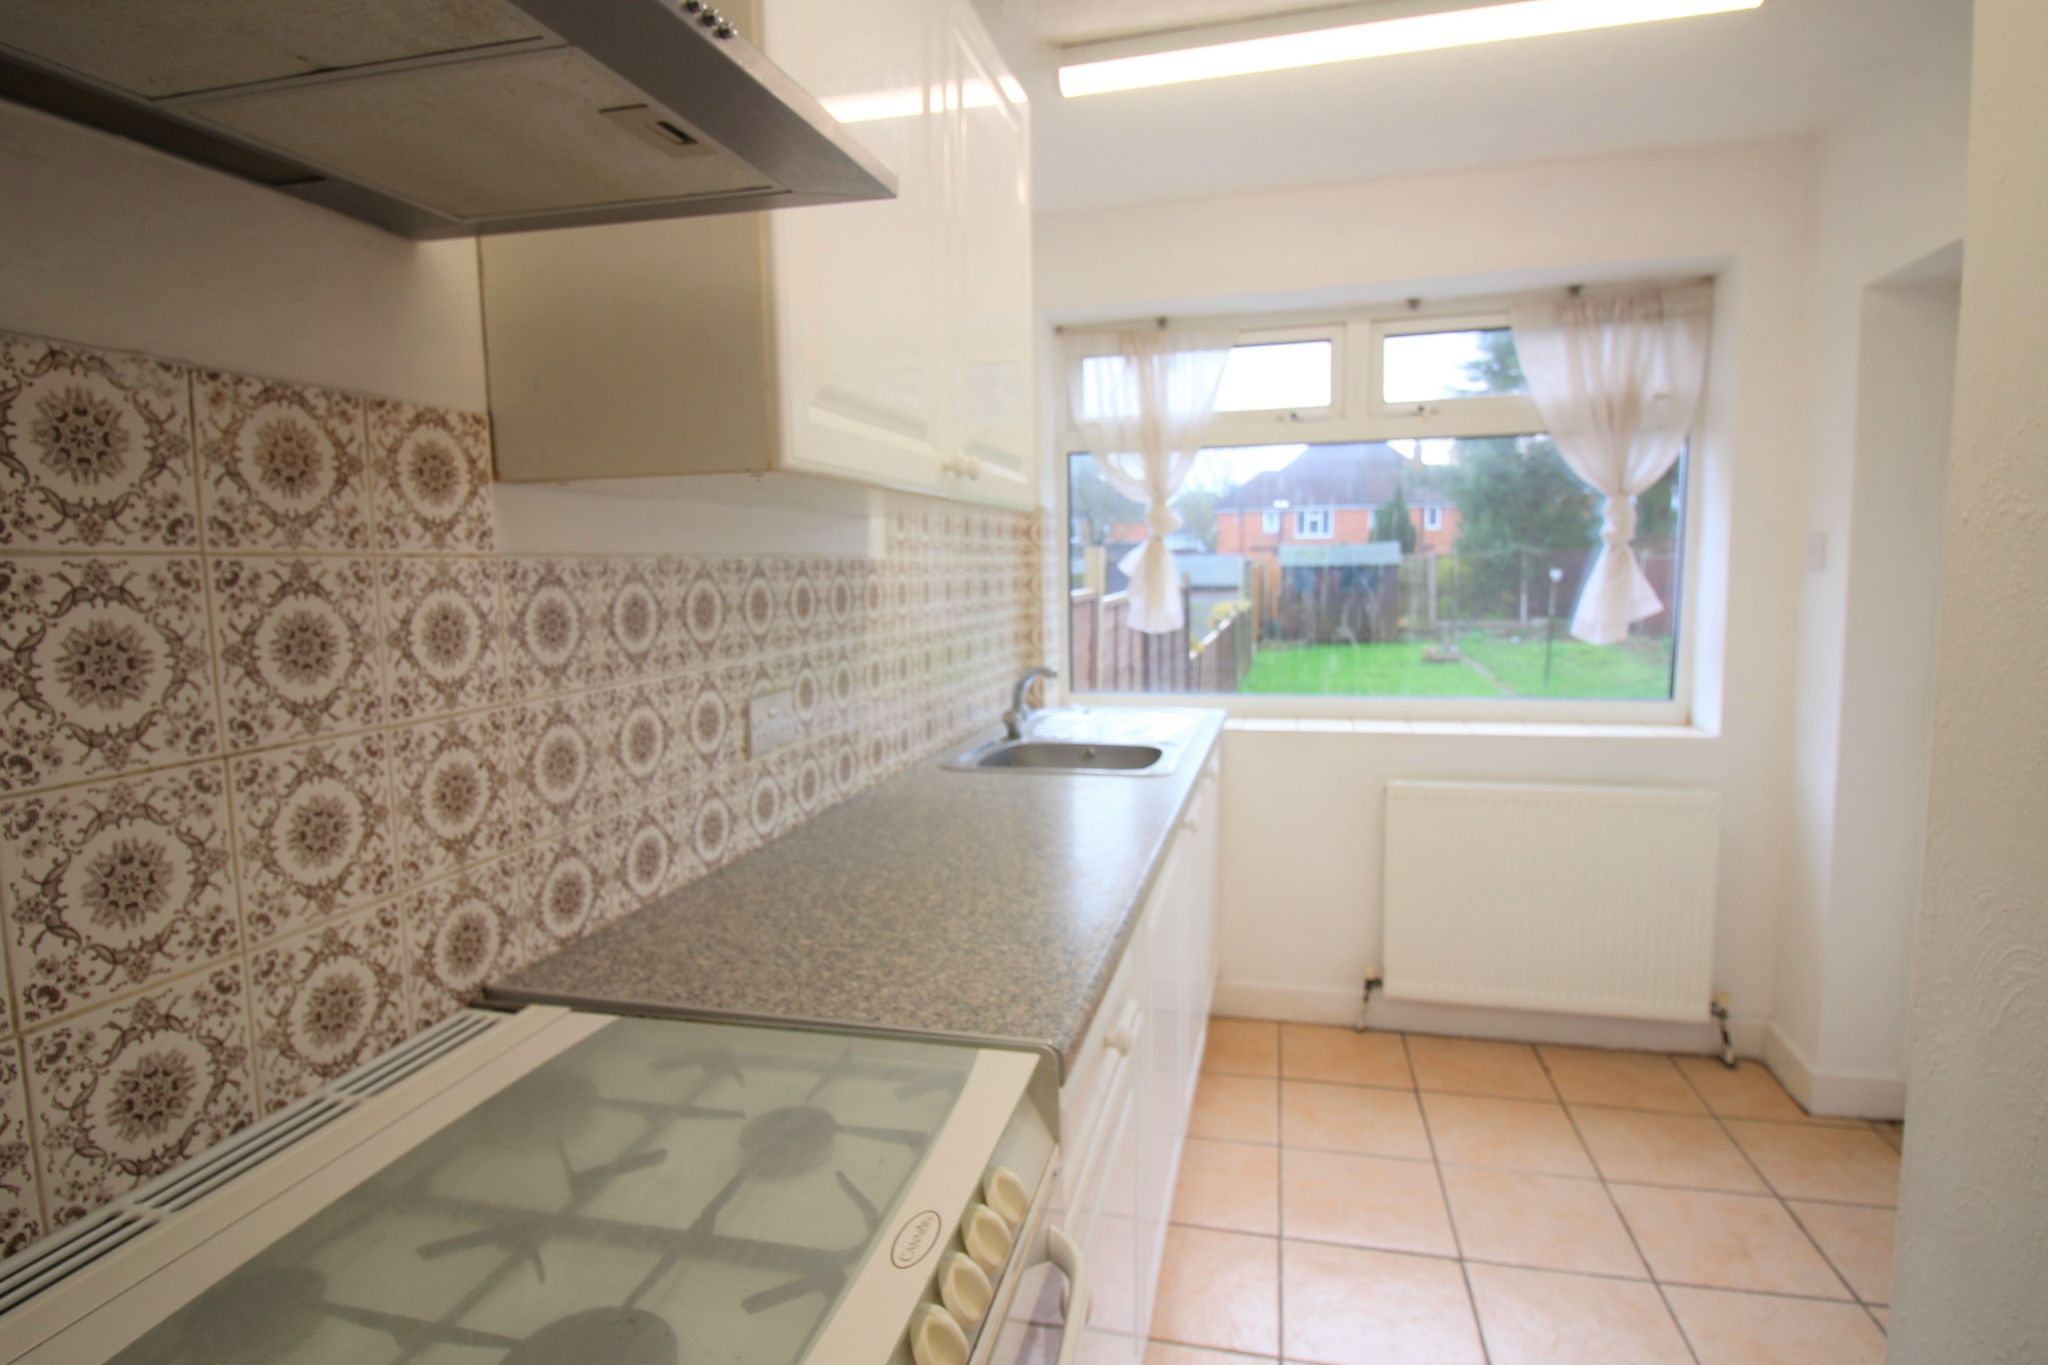 3 bedroom semi-detached house Let Agreed in Solihull - Photograph 4.